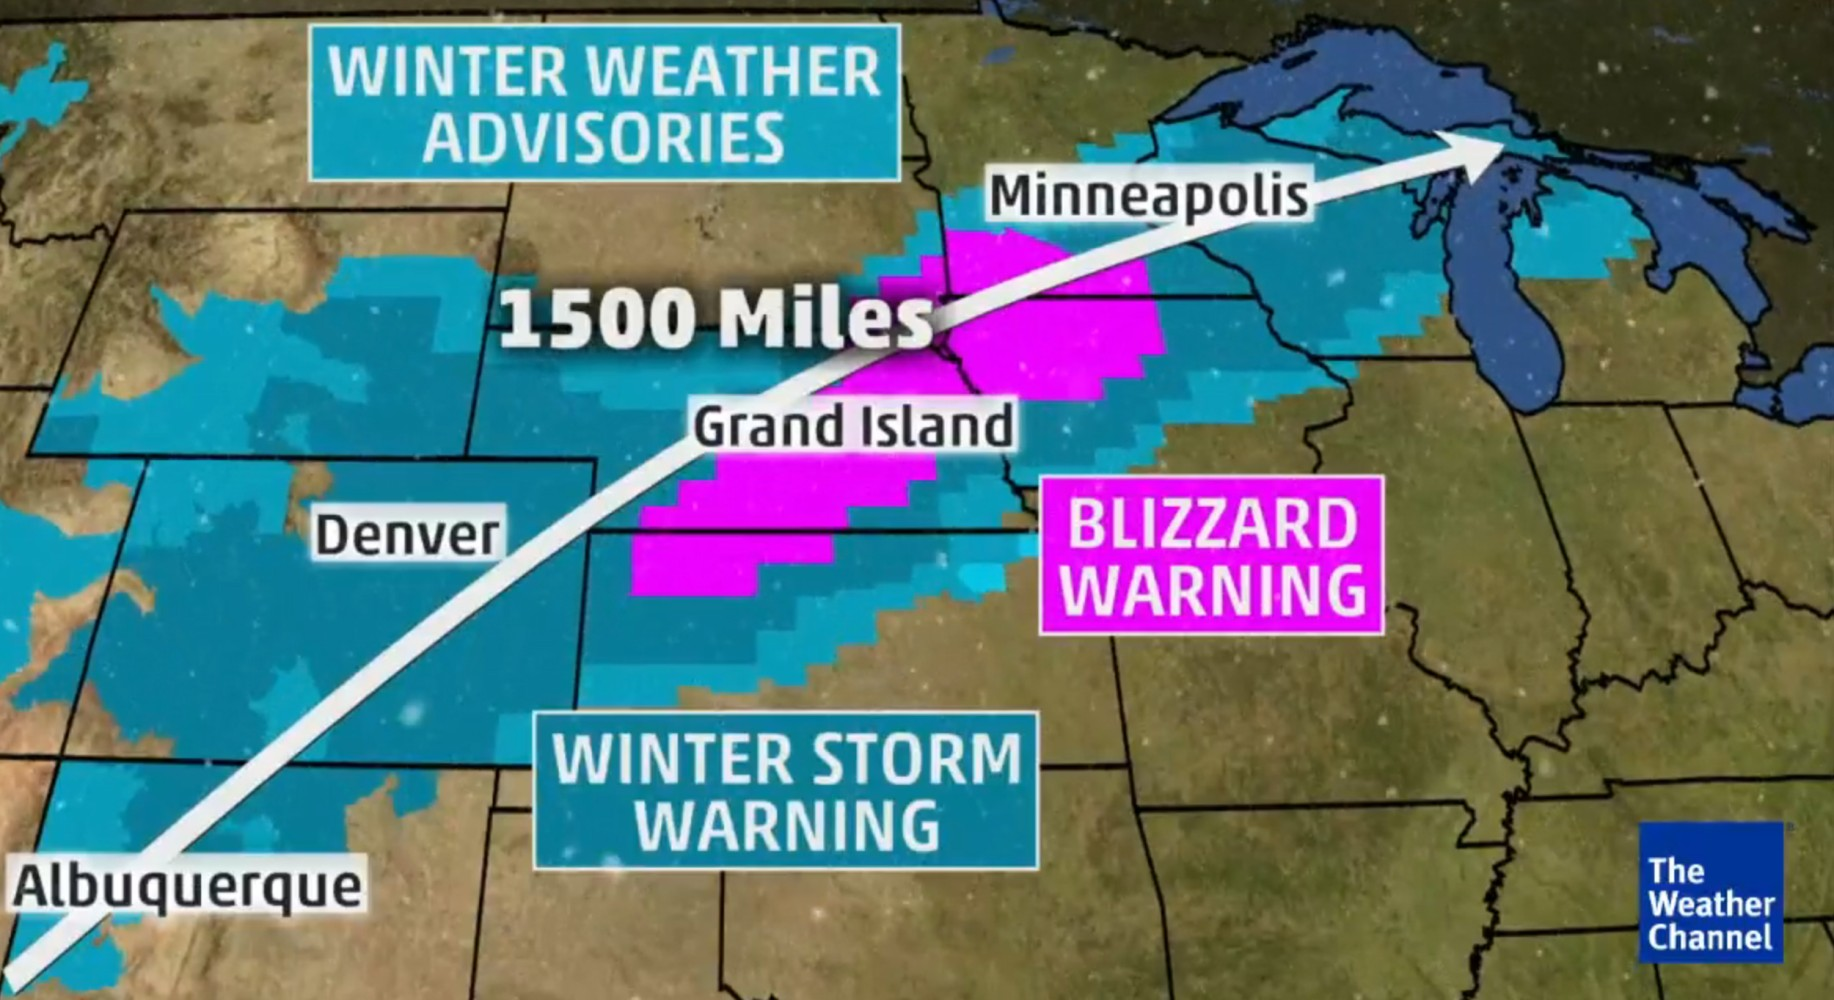 Snowstorm 60 Mph Winds Threaten Blizzards Across Plains And Midwest Nbc News